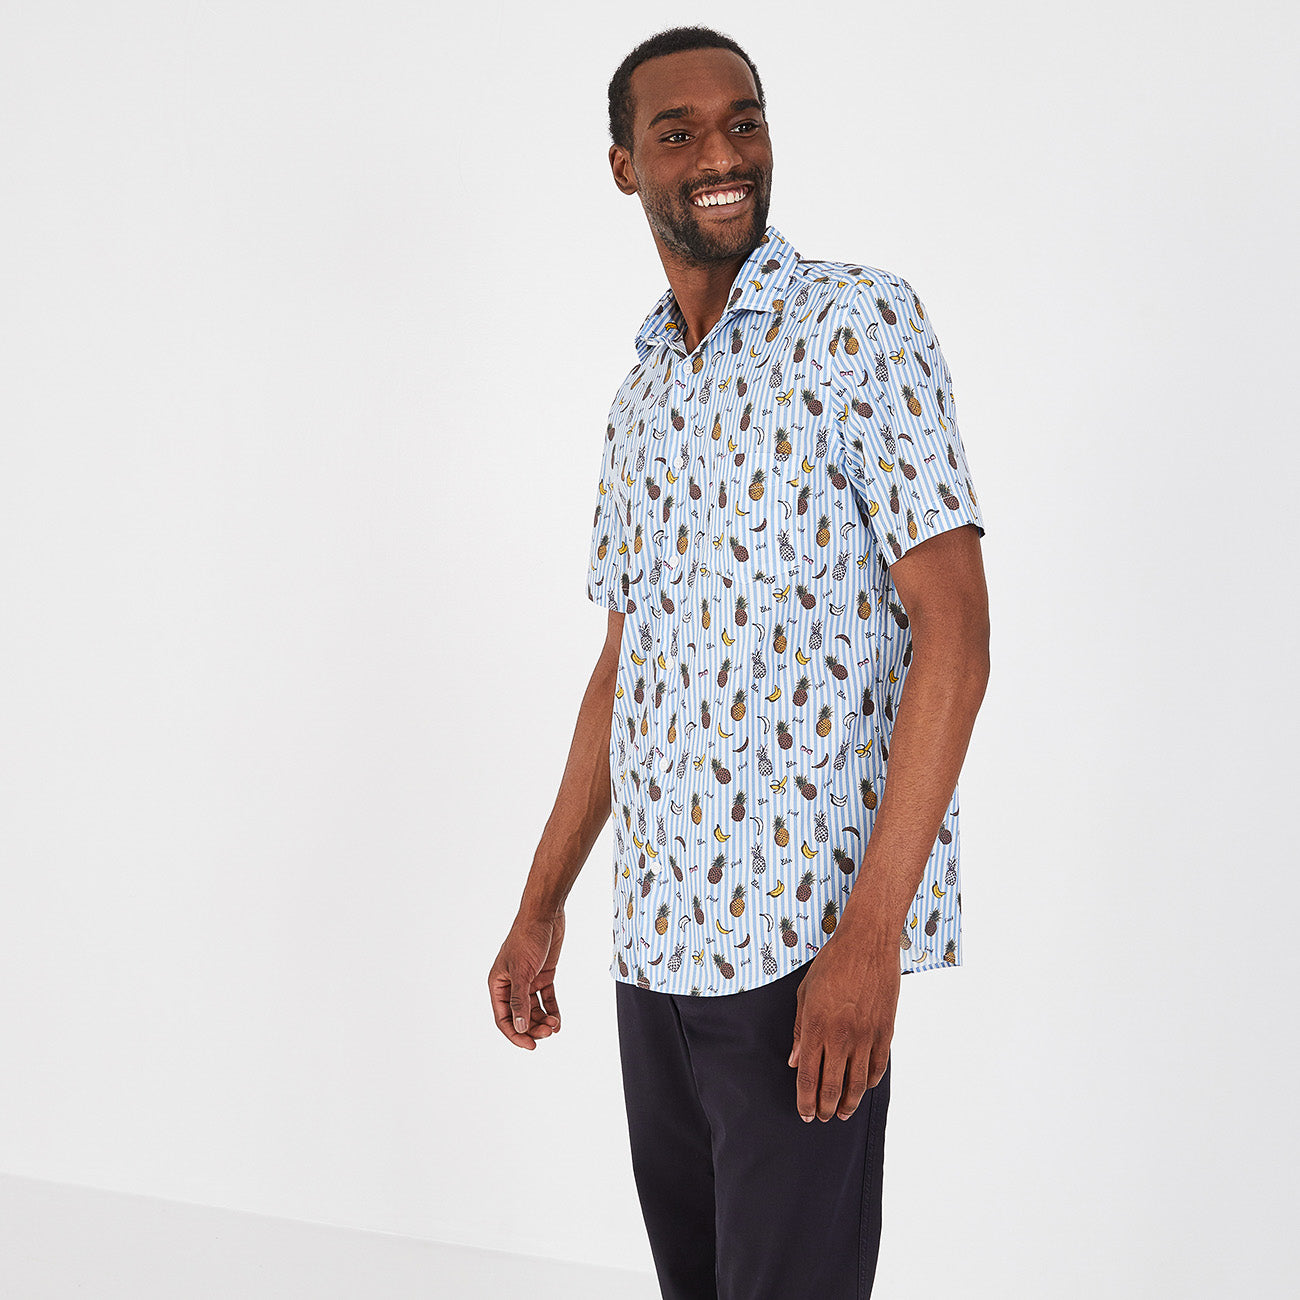 Slim fit fruity short sleeve shirt by Eden Park